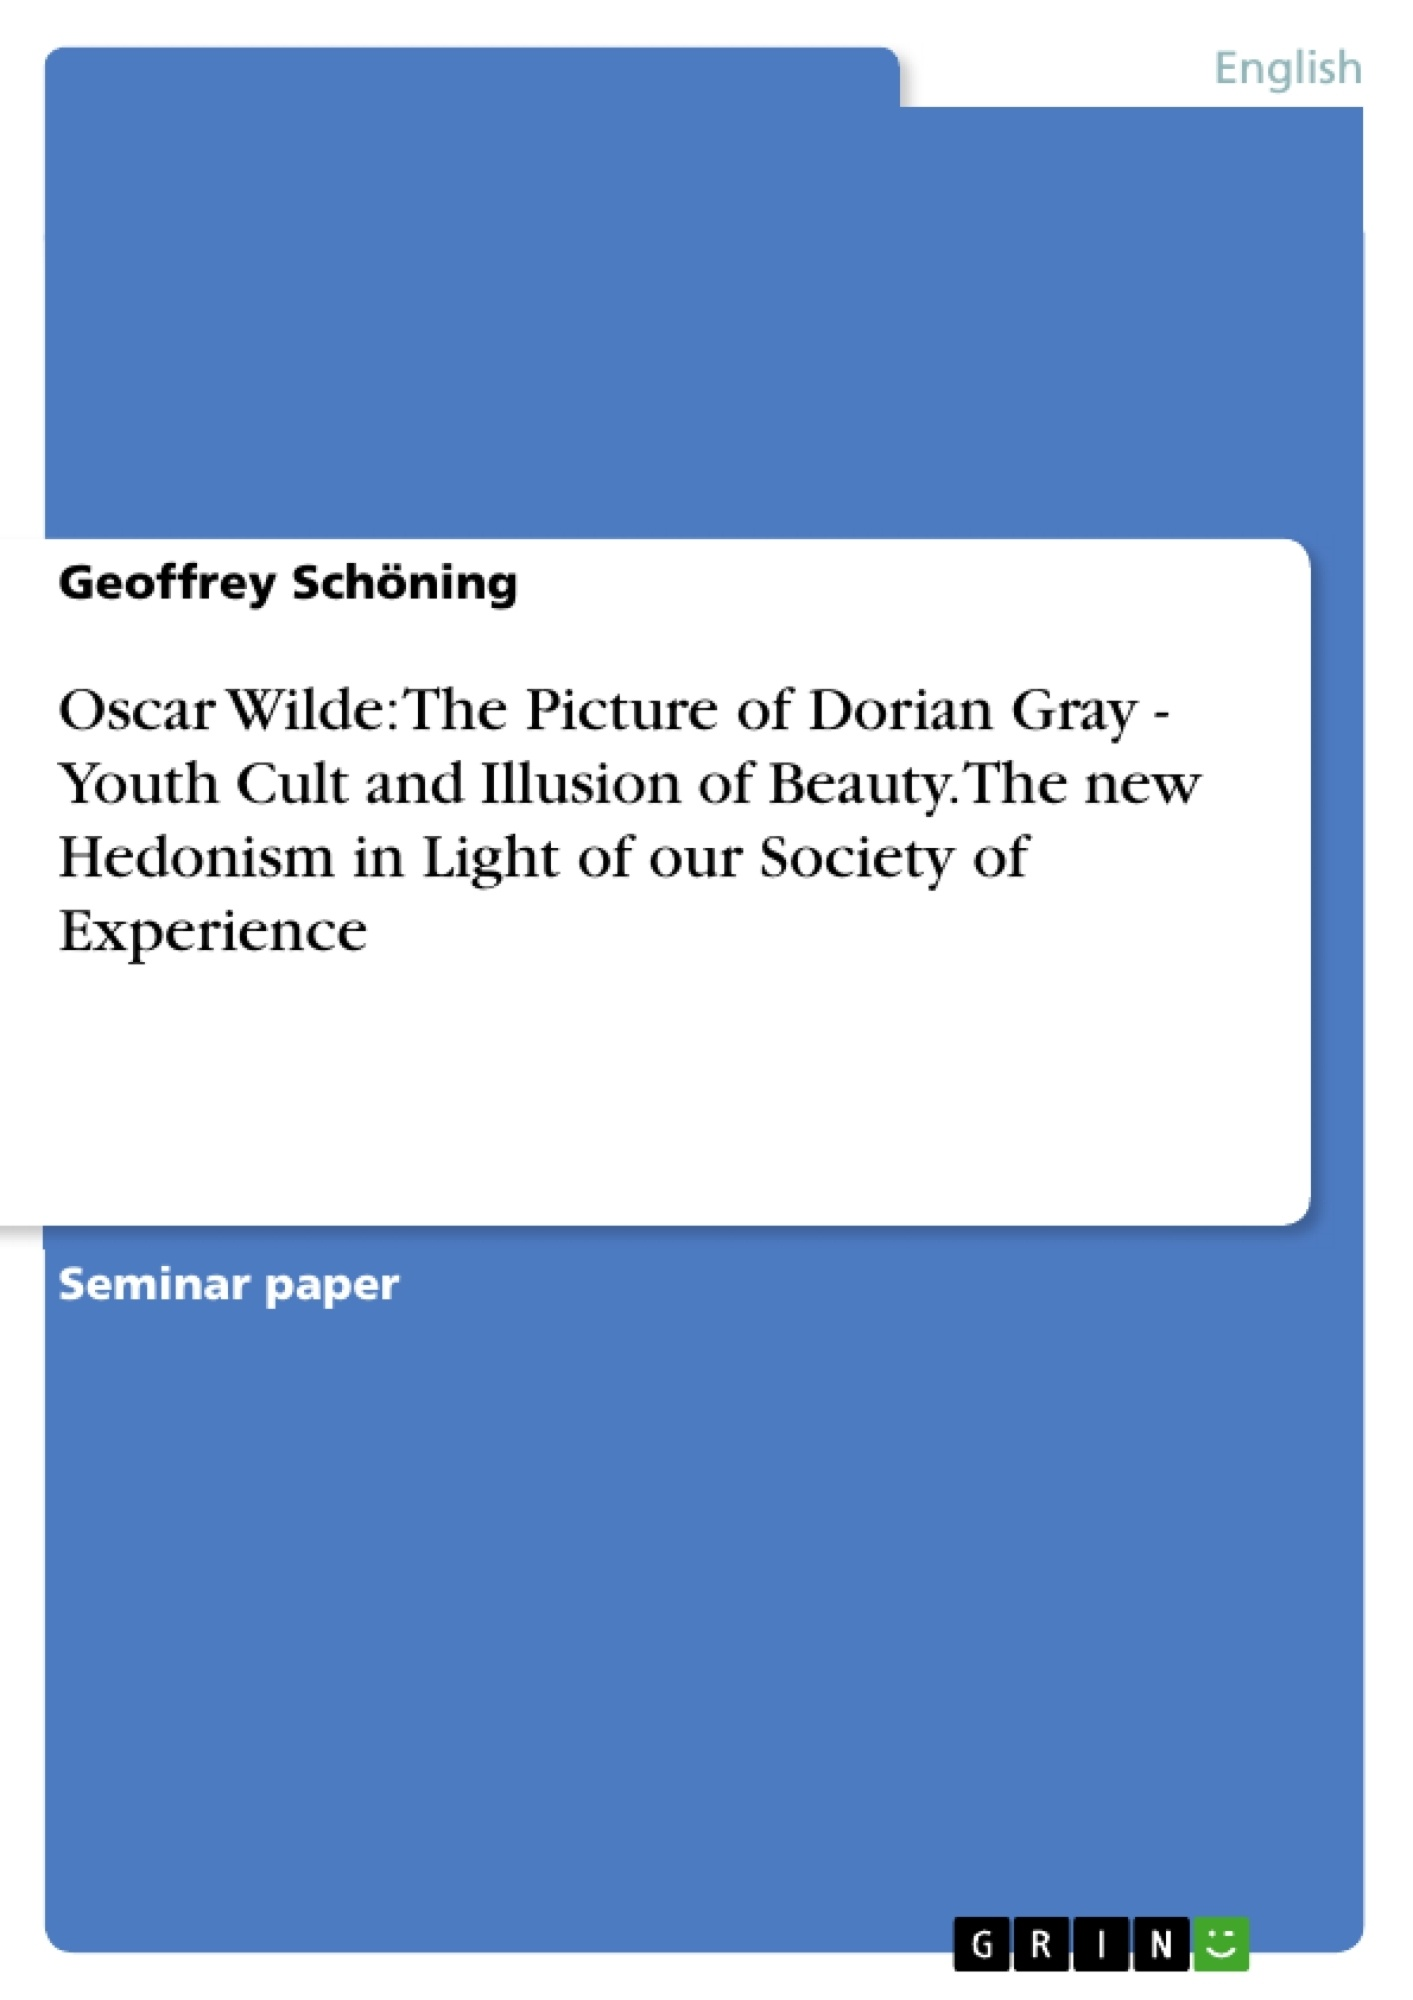 Title: Oscar Wilde: The Picture of Dorian Gray - Youth Cult and Illusion of Beauty. The new Hedonism in Light of our Society of Experience